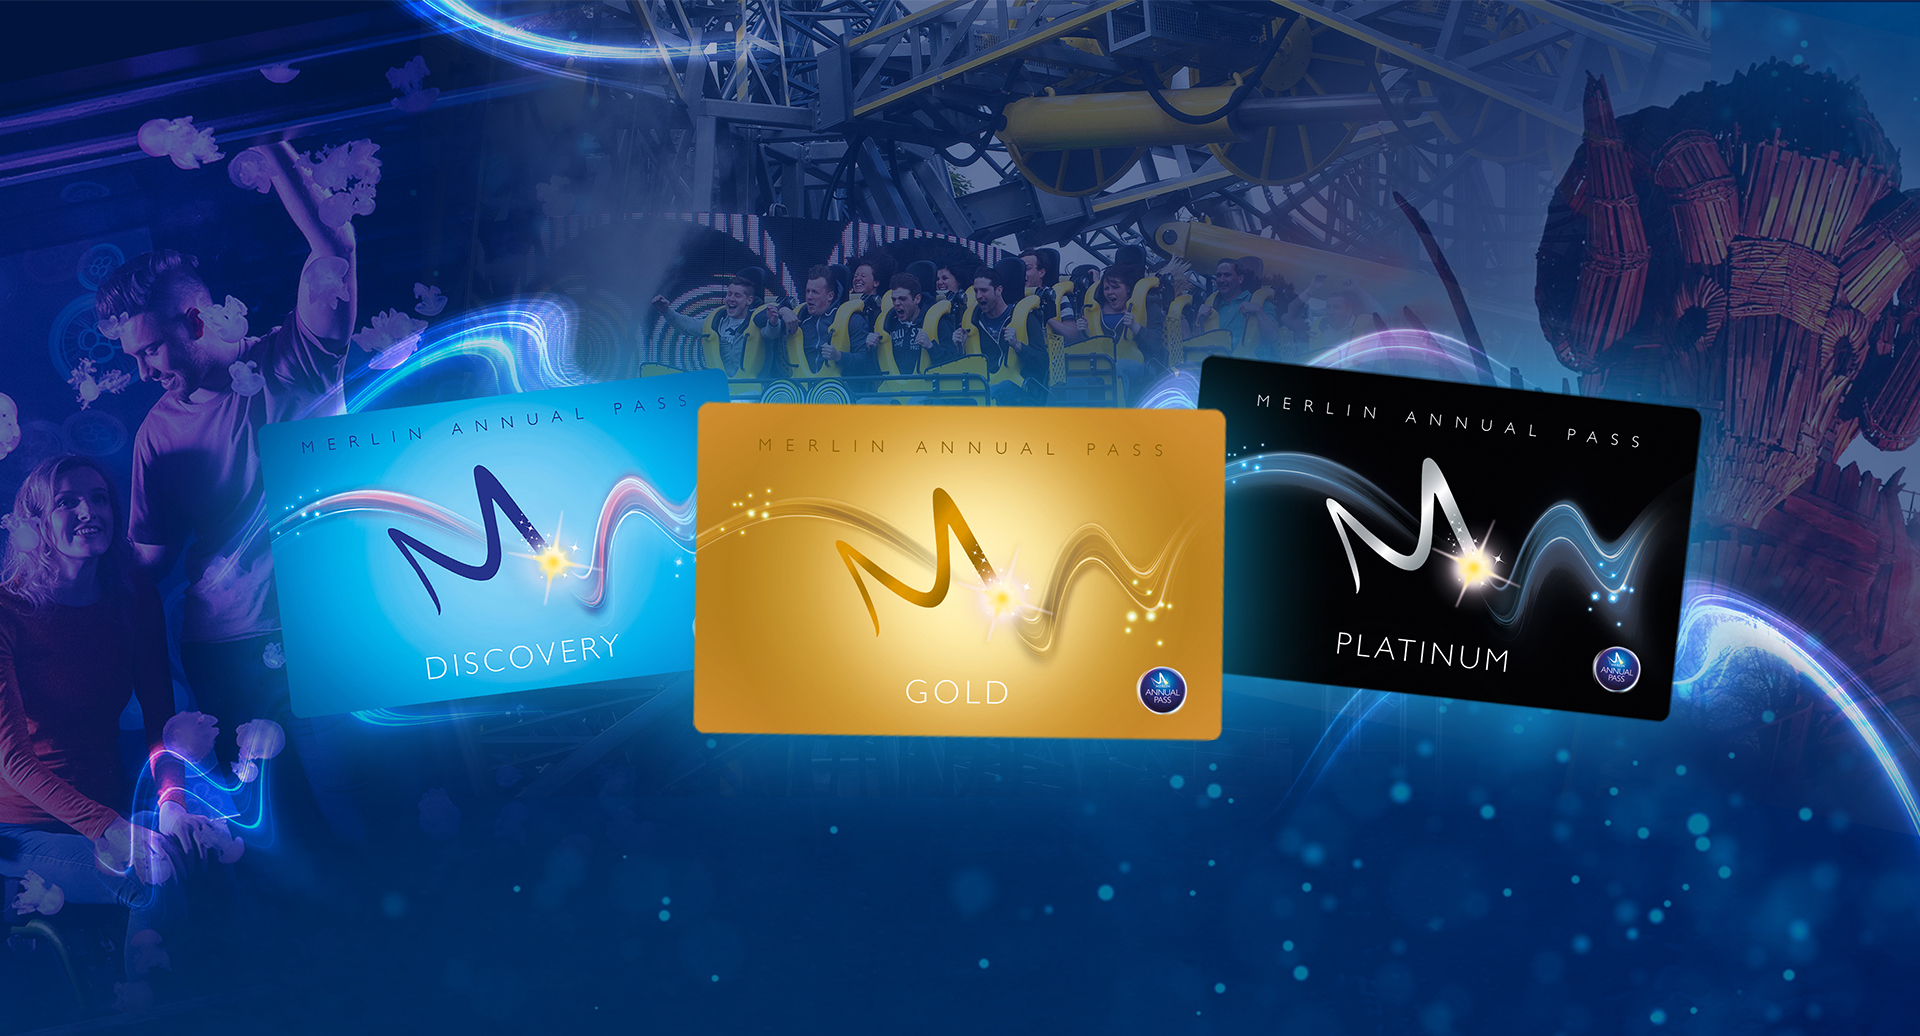 Merlin Annual Passes